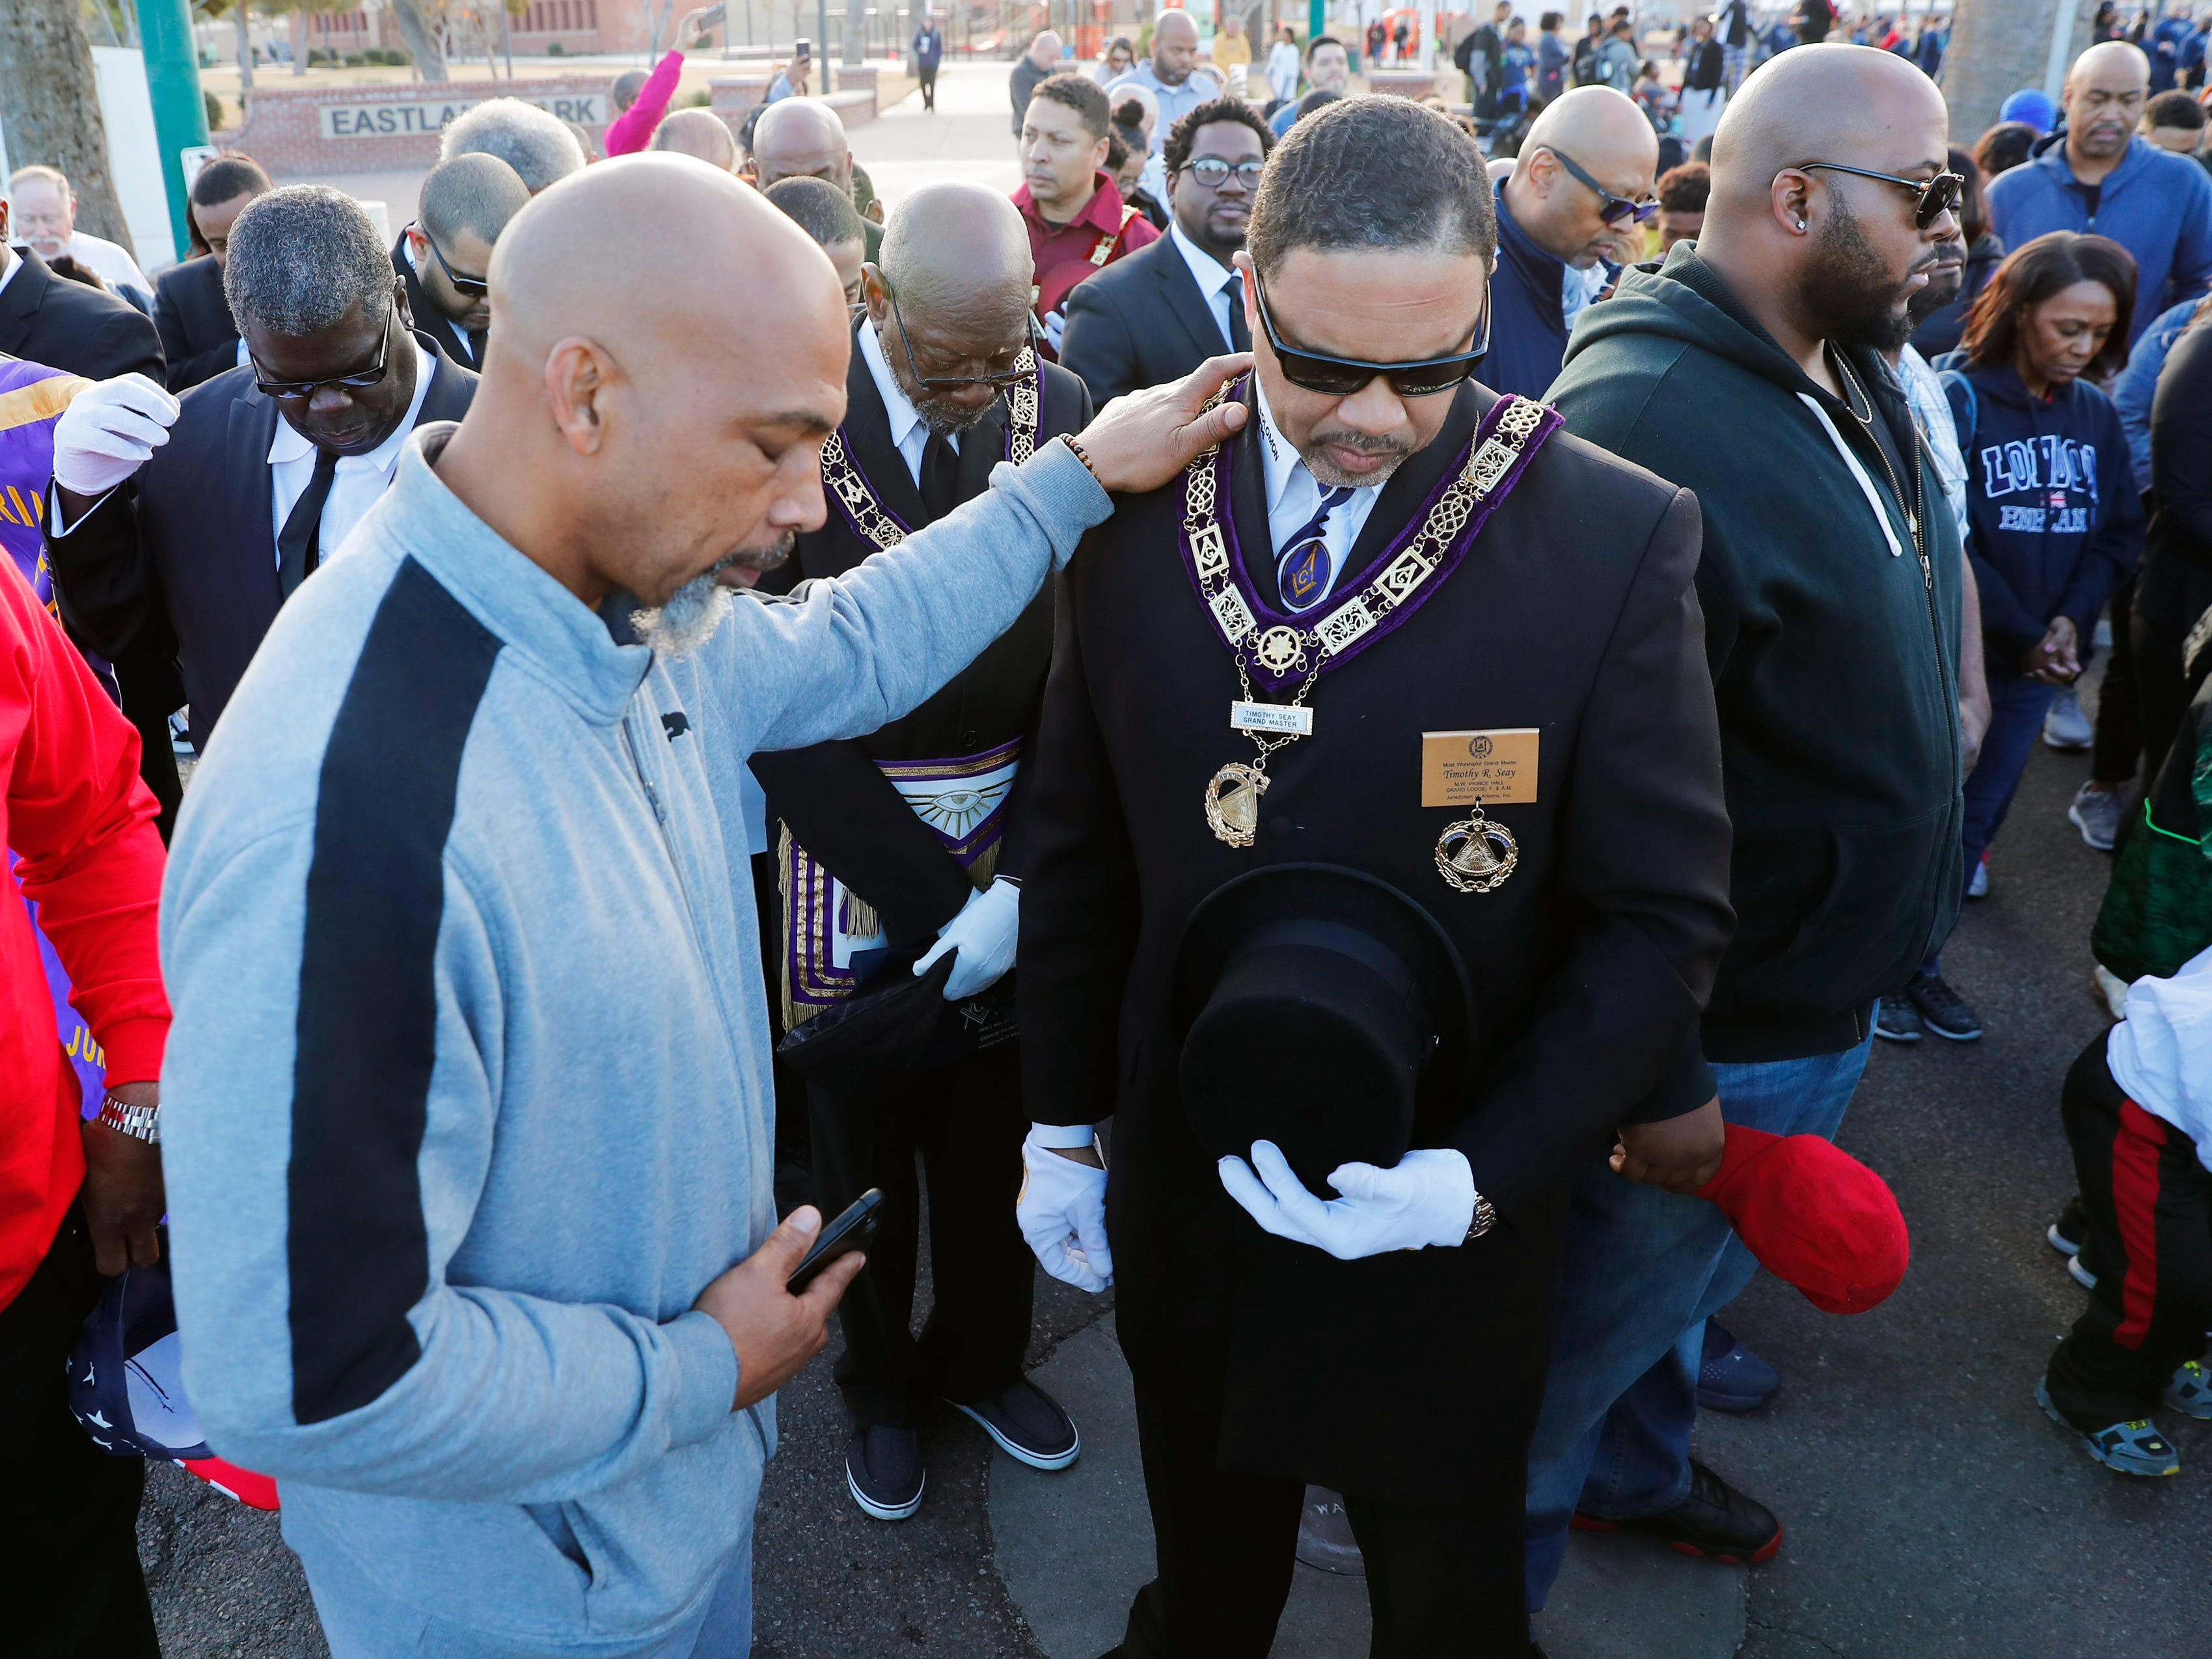 Kala Roy and Timmothy Seay bow their heads in prayer before marching honoring Dr. Martin Luther King in downtown Phoenix, AZ.